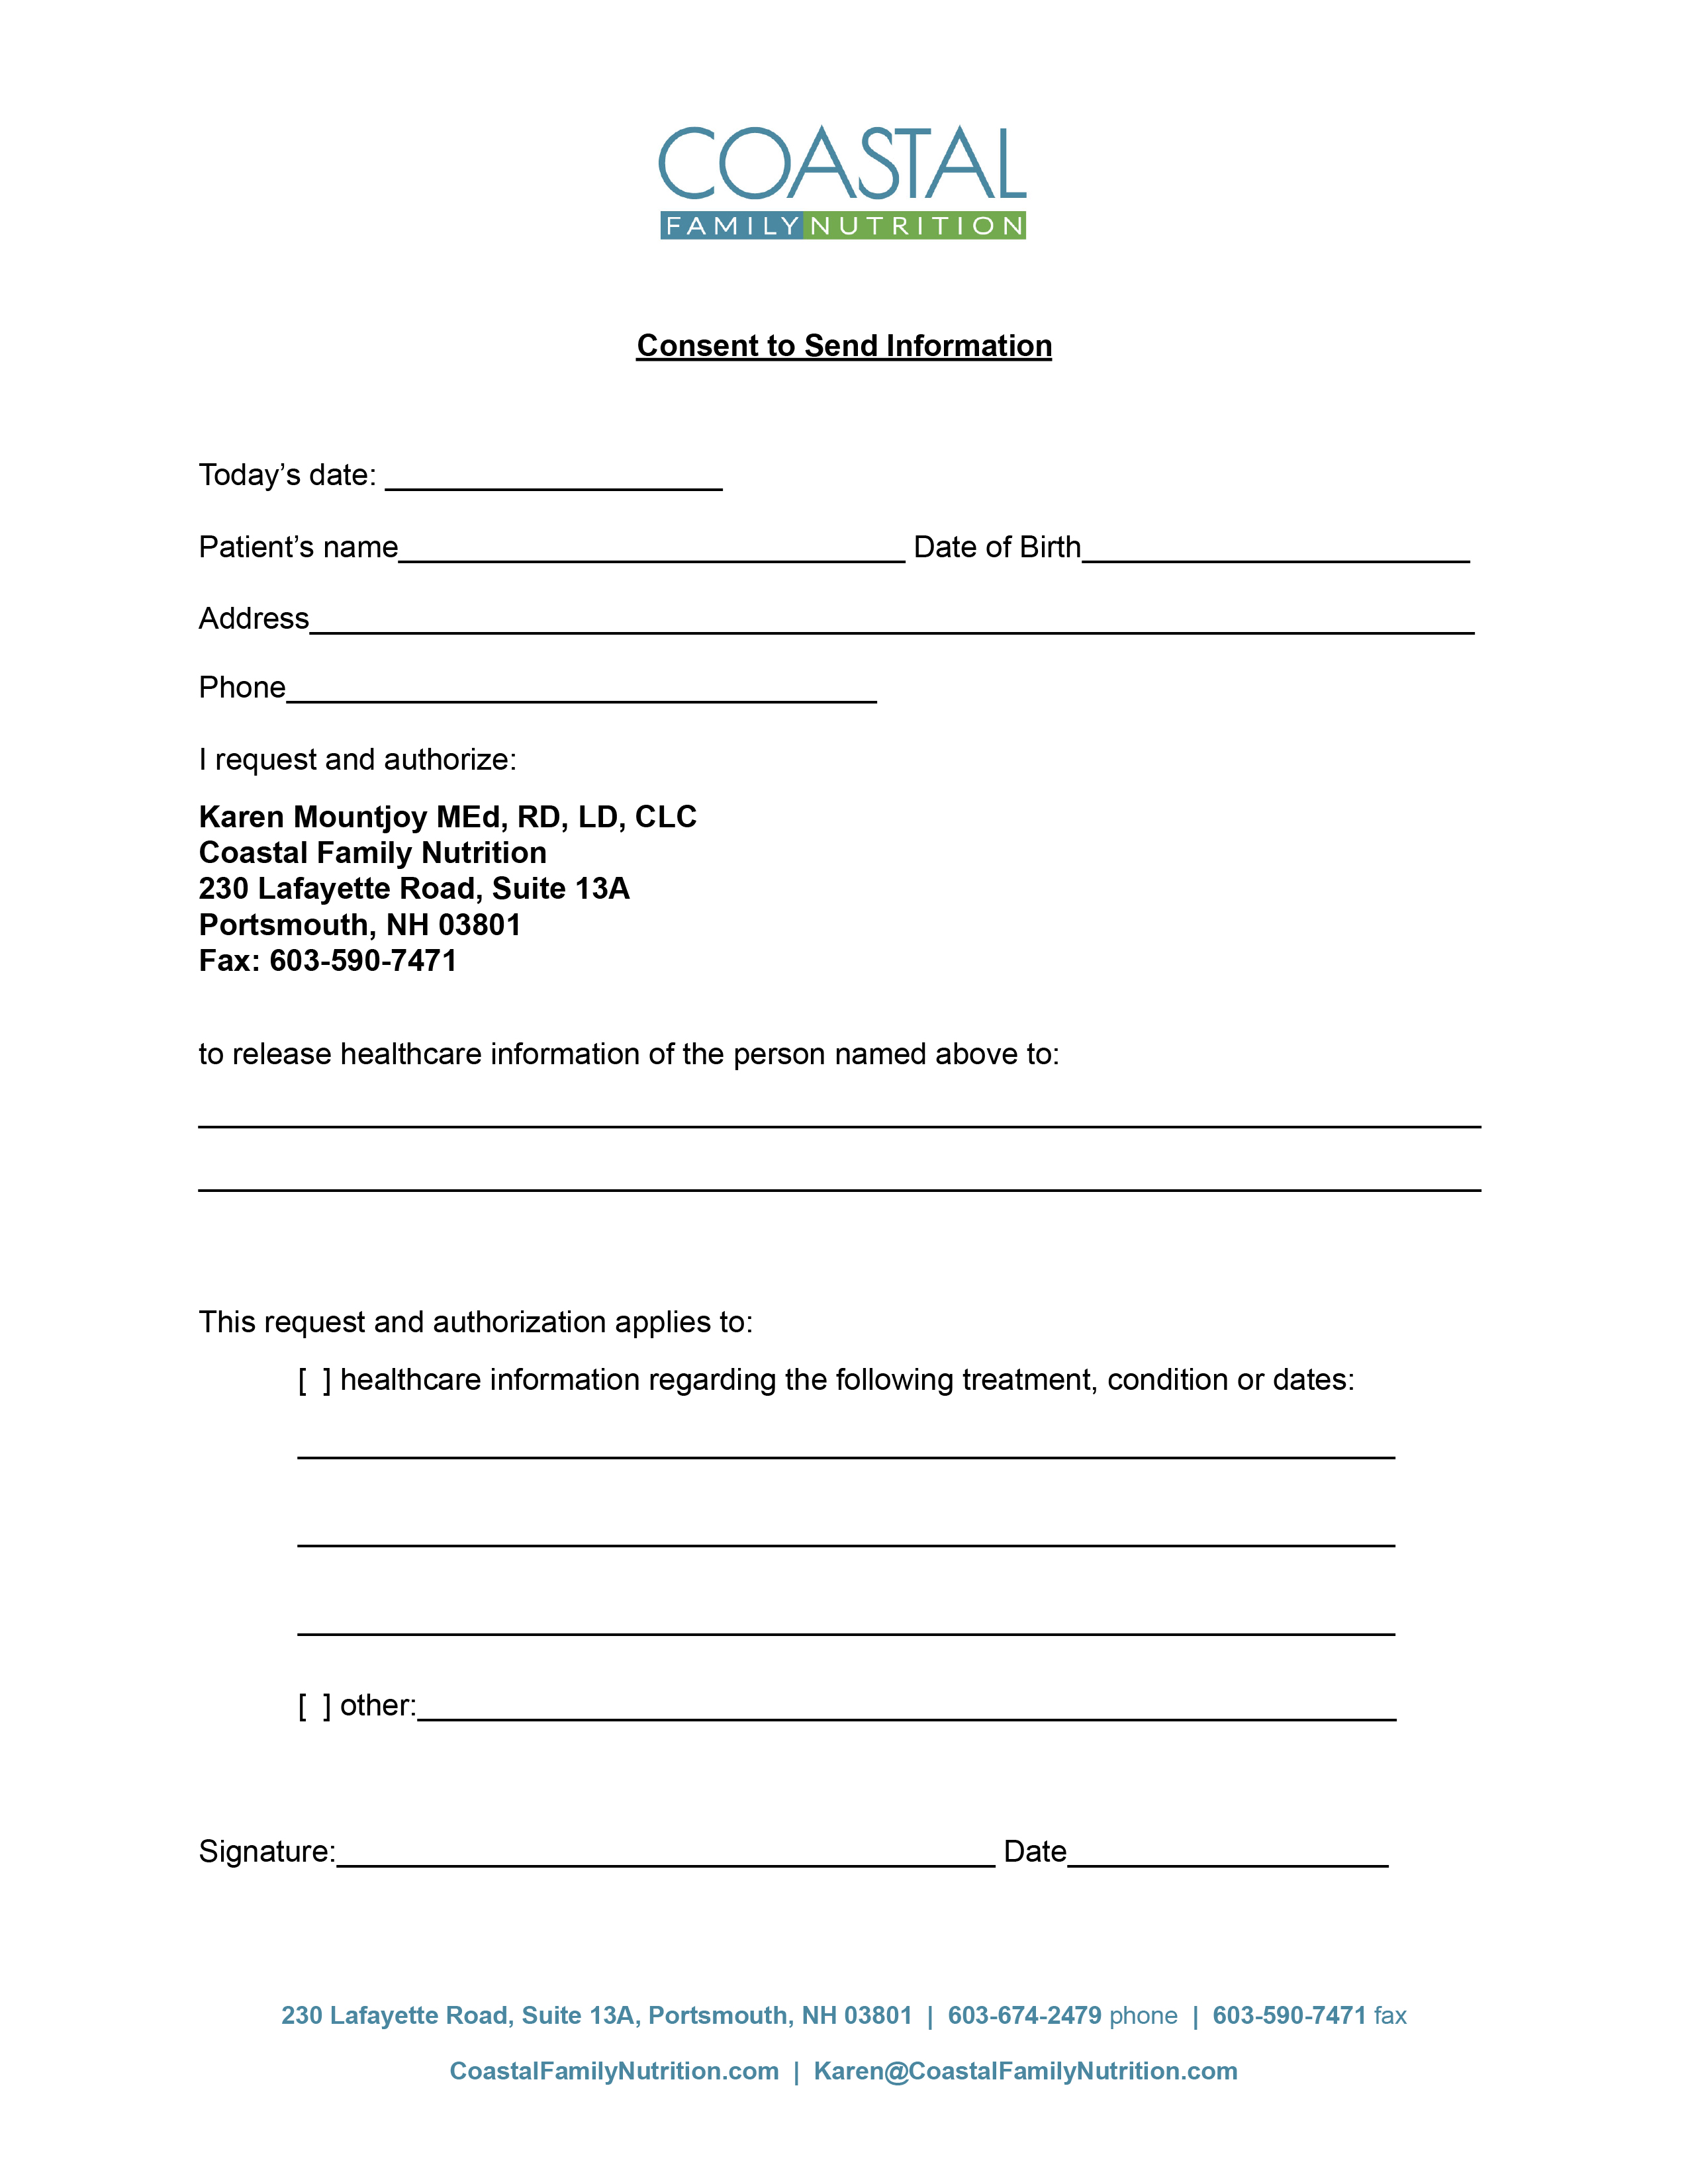 Consent to Send Information